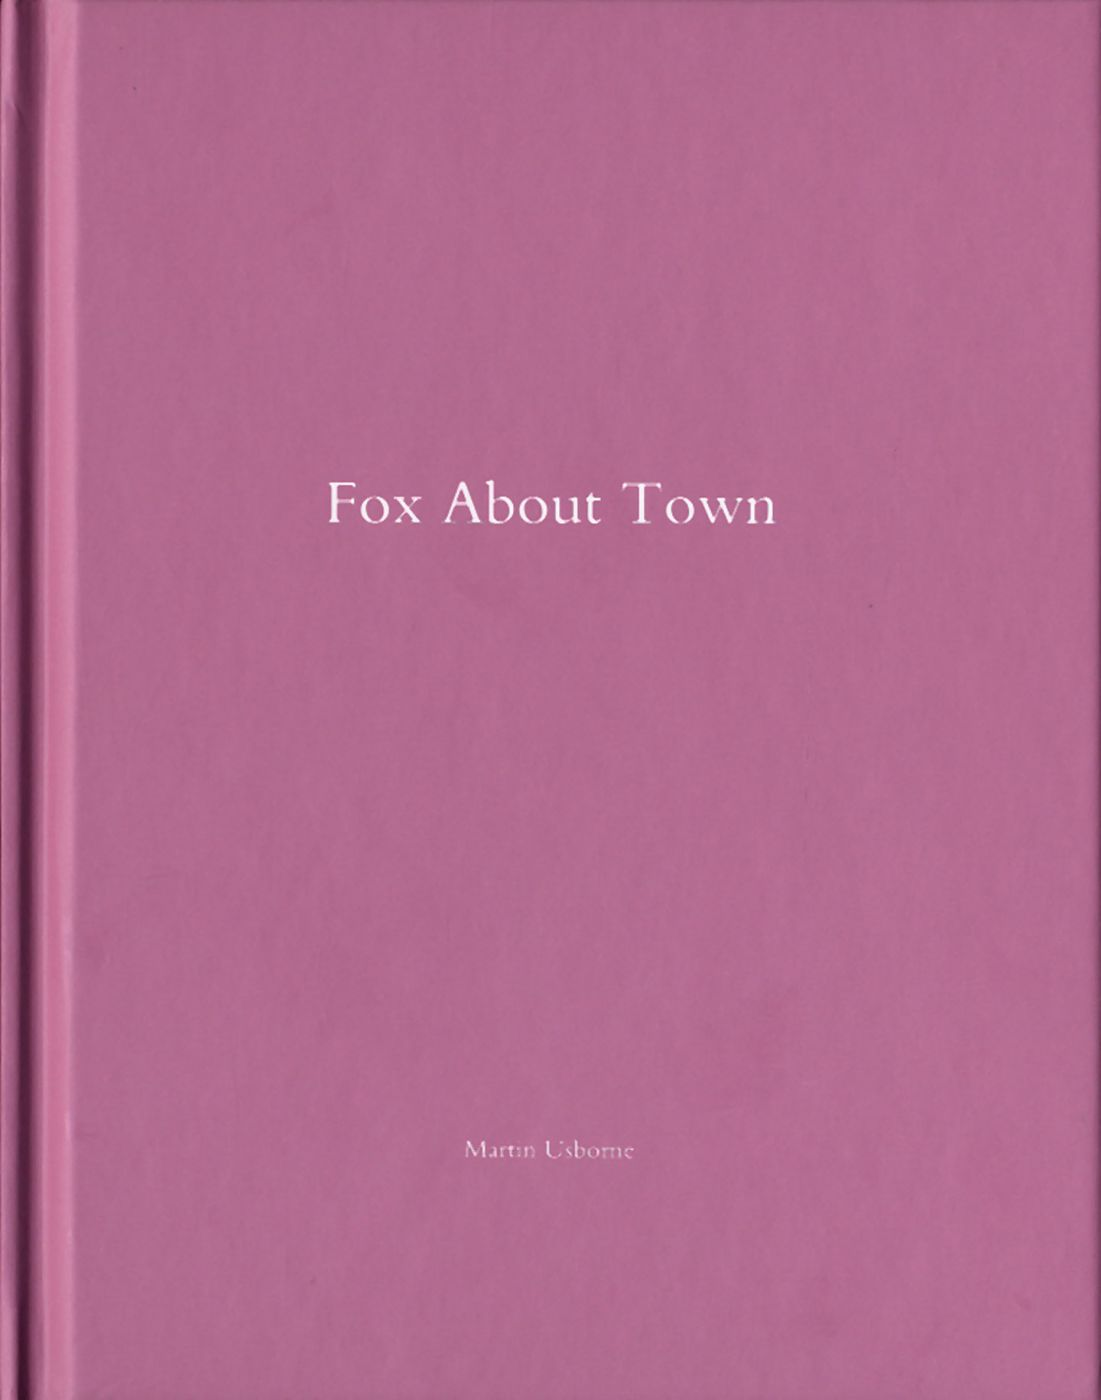 Martin Usborne: Fox About Town (One Picture Book #79), Limited Edition (with Print)